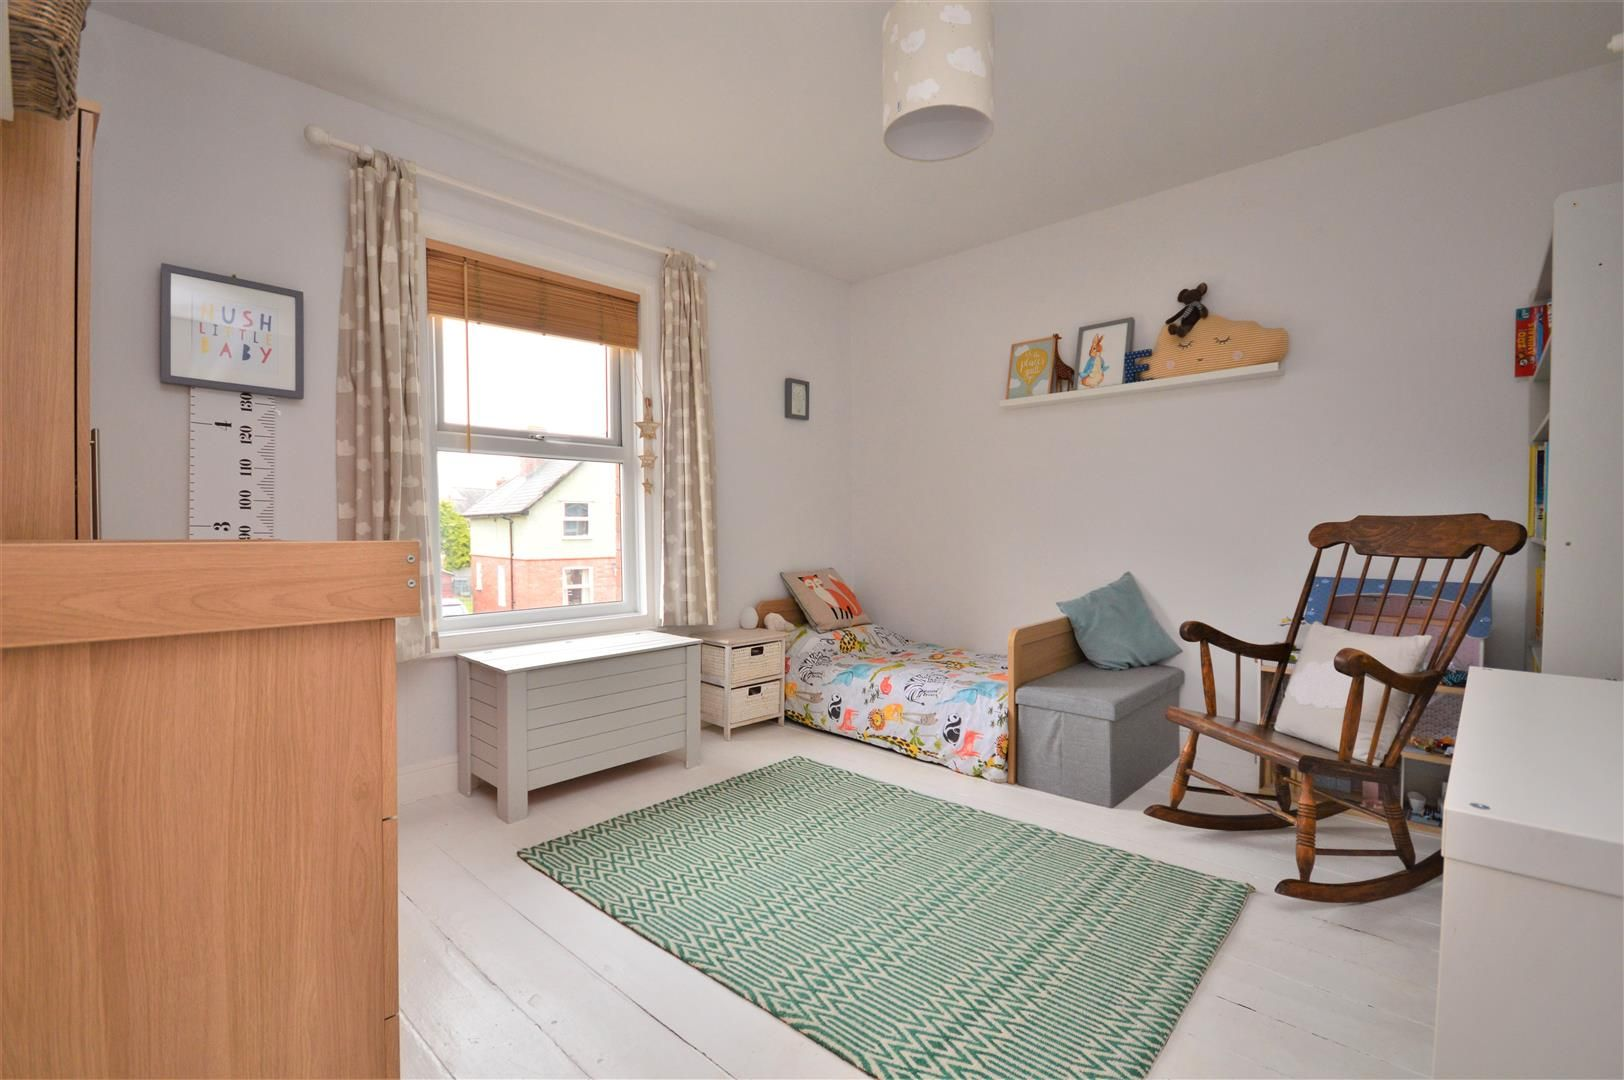 2 bed end-of-terrace for sale 10